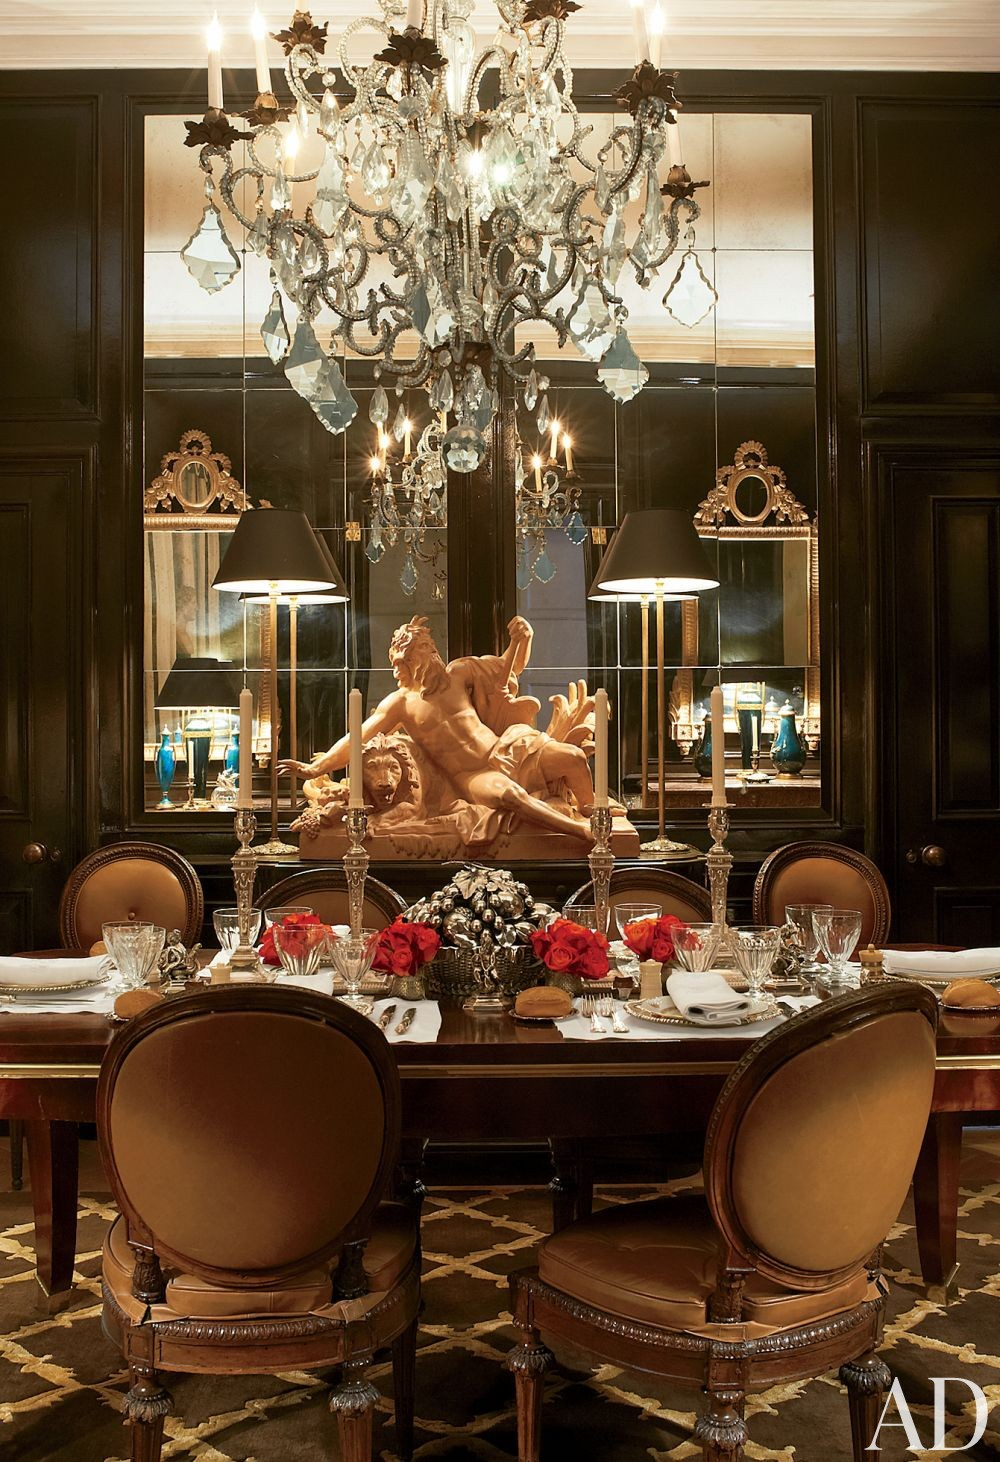 Traditional Dining Room by Paolo Moschino and Philip Vergeylen in London, England